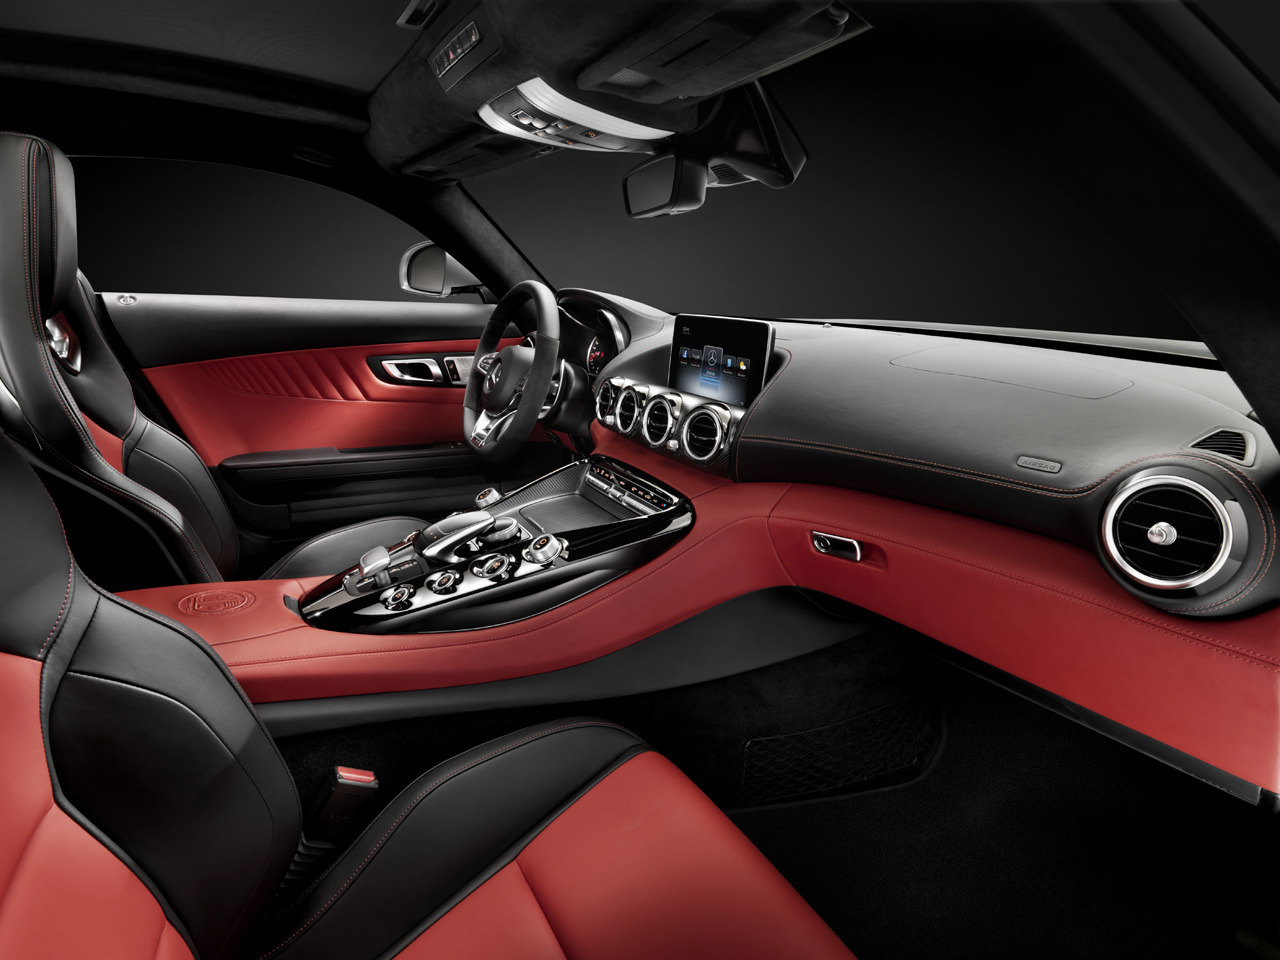 amg teases interior of upcoming gt sports car autospies auto news. Black Bedroom Furniture Sets. Home Design Ideas